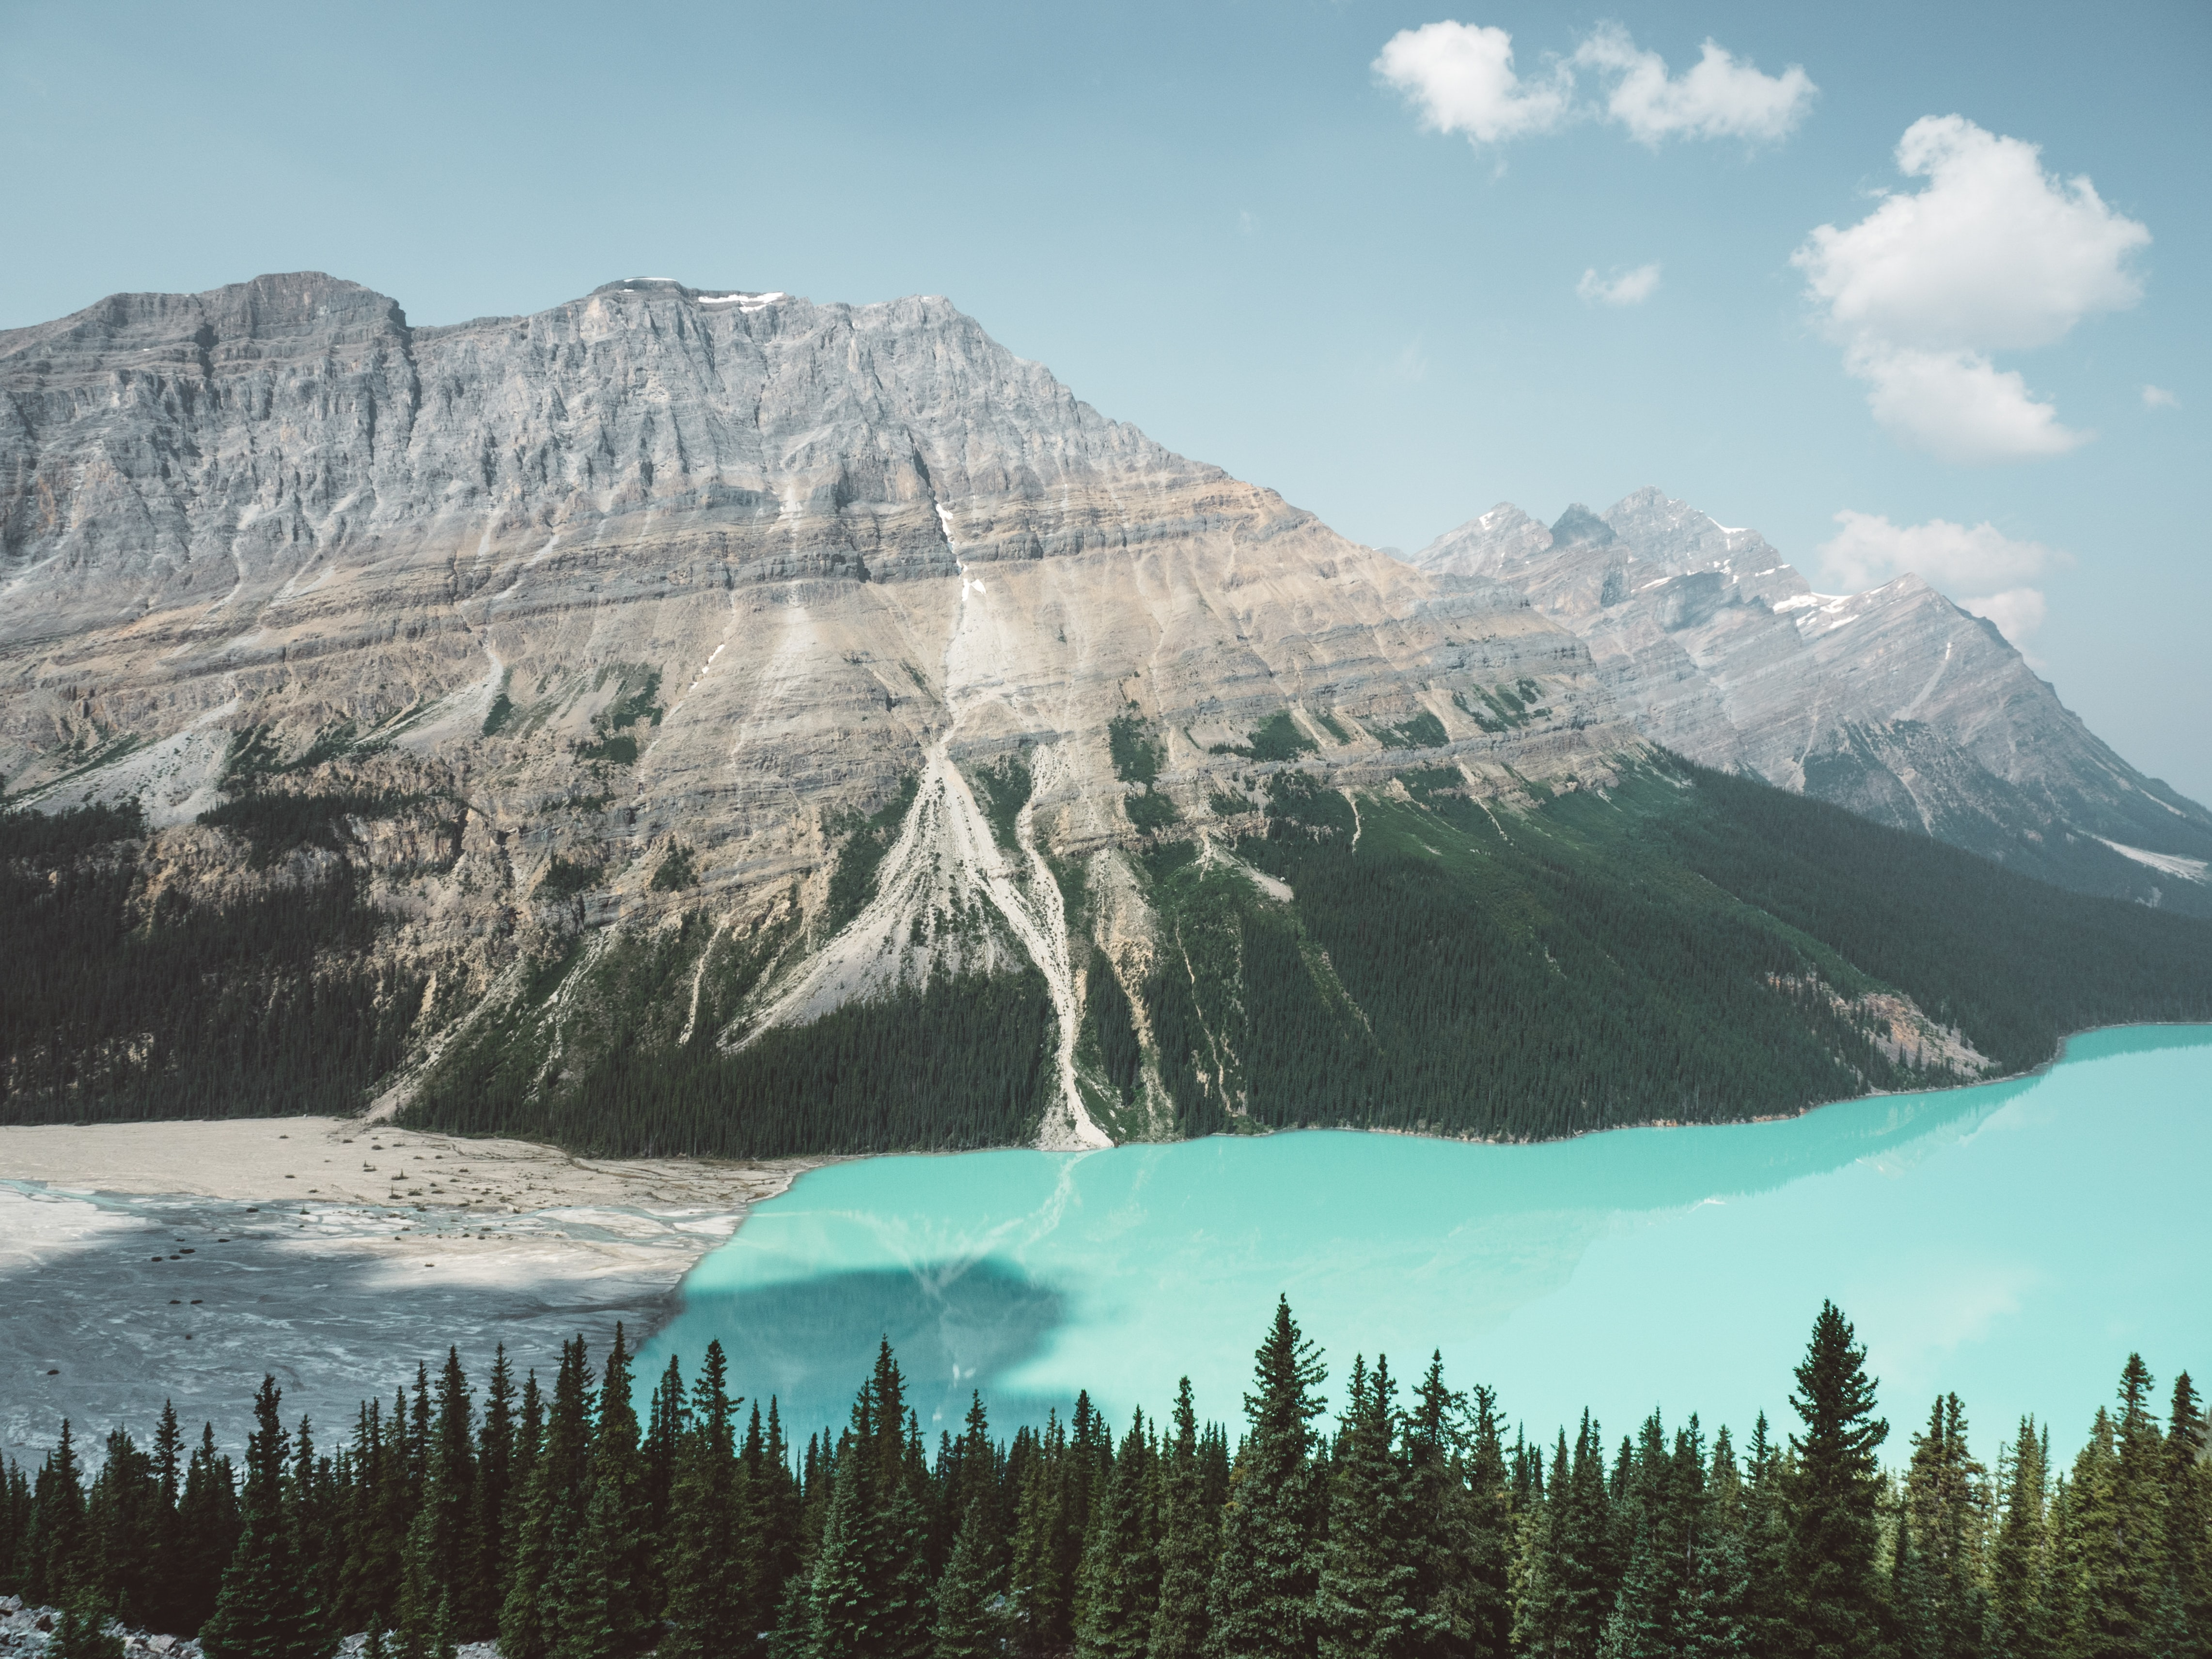 panoramic photography of mountain beside water